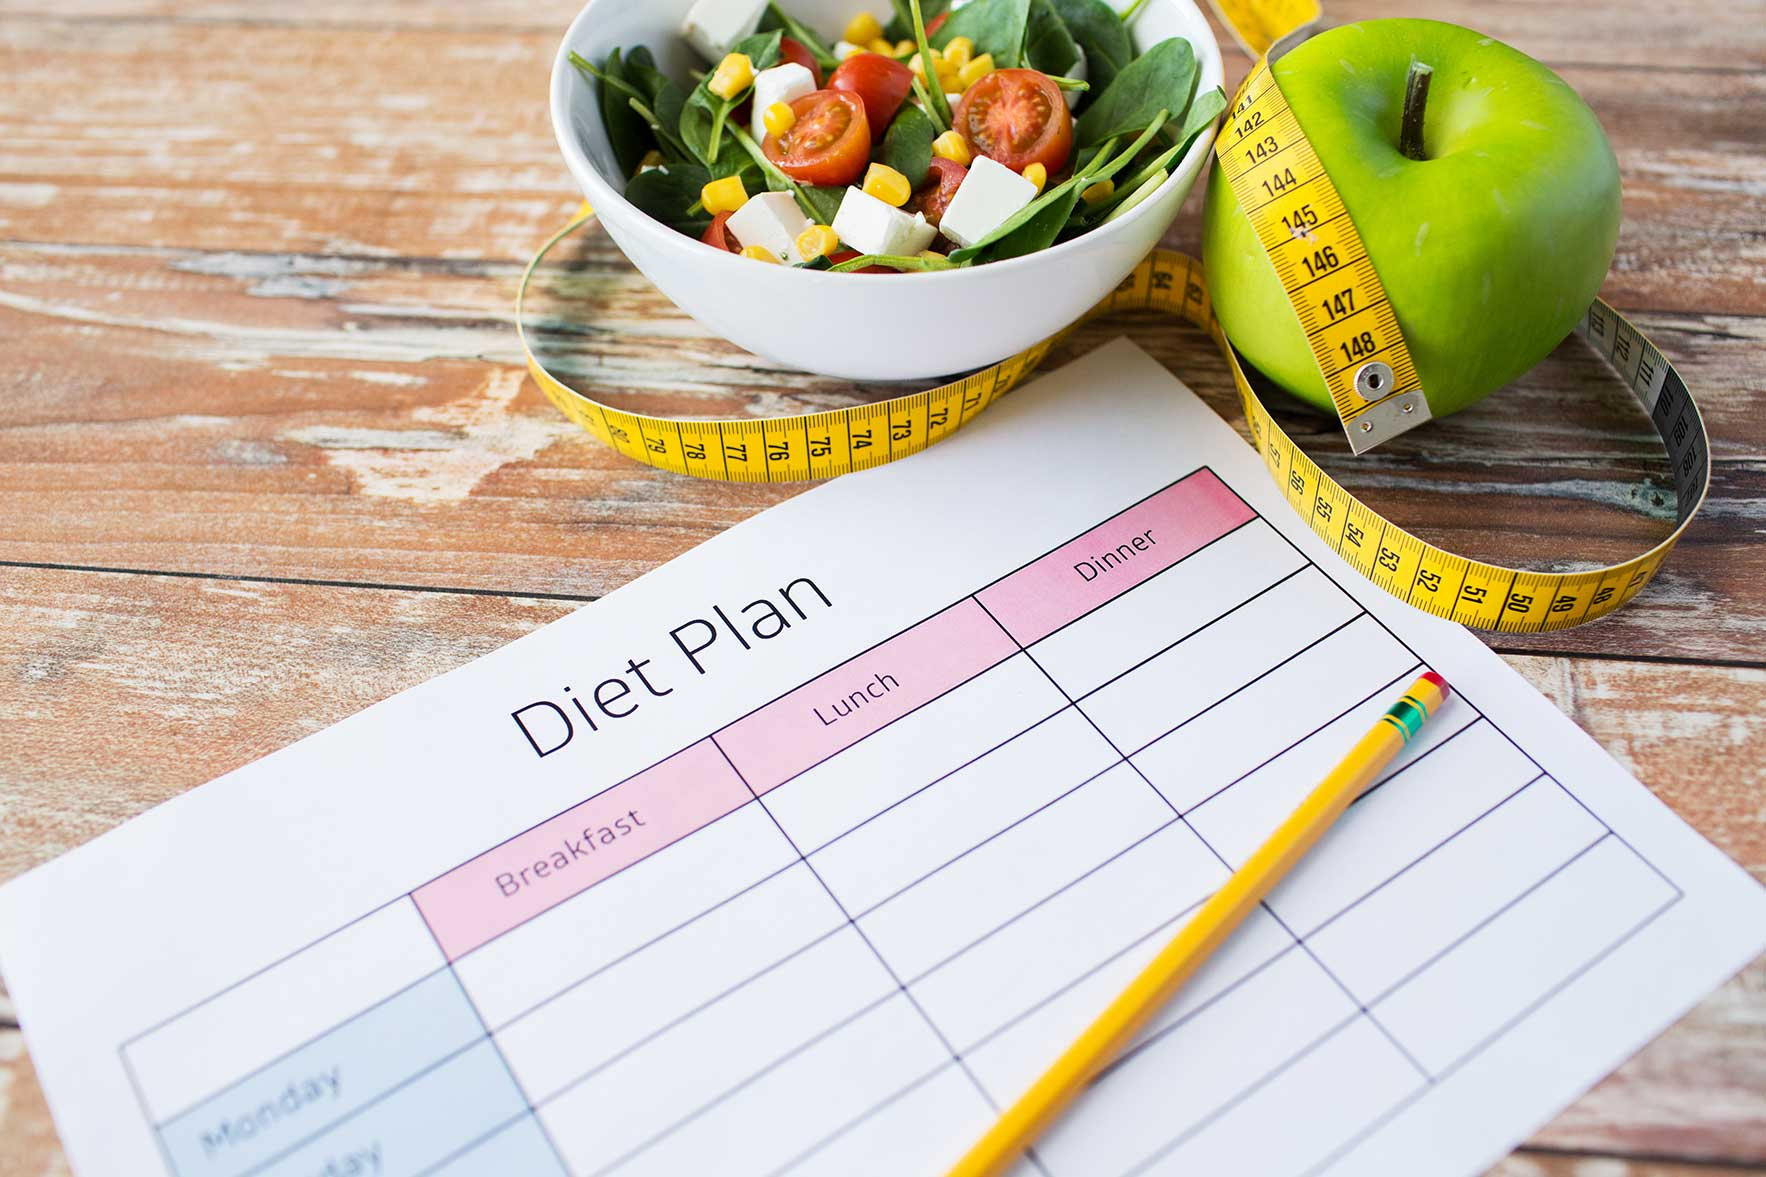 The Best 8 Diets Plans for Weight Loss Sustainability and More